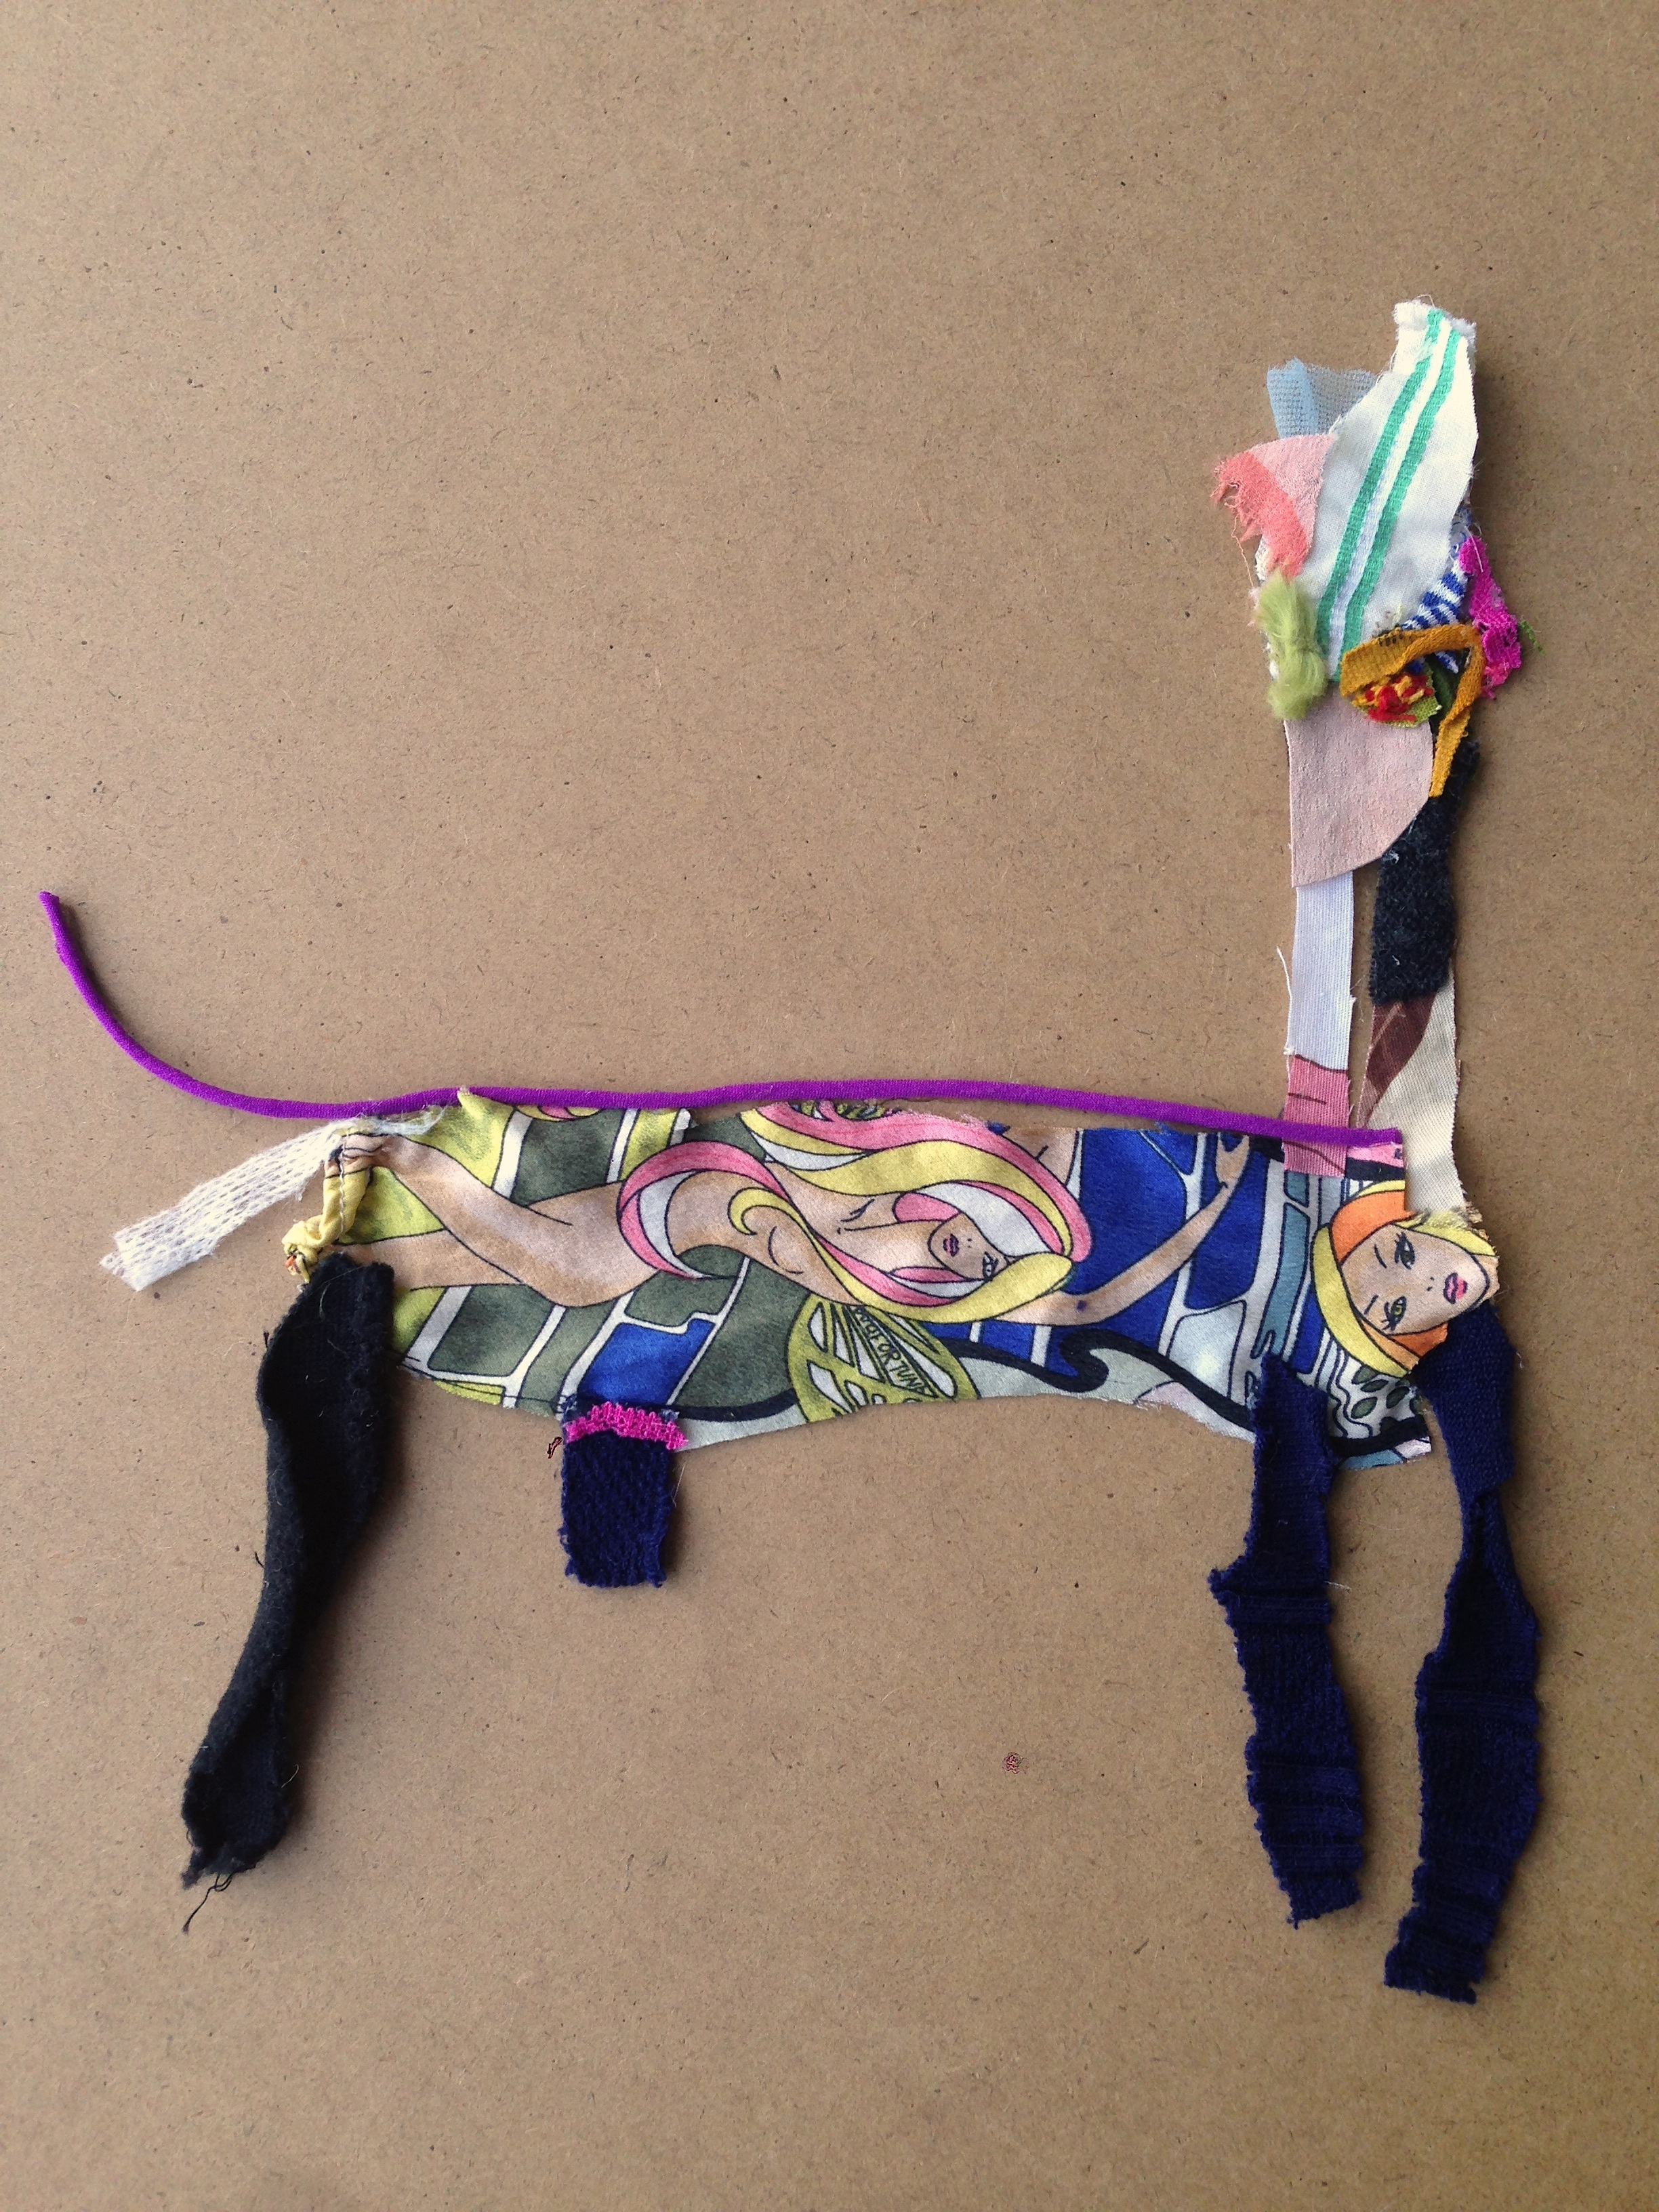 One Sexy Beast (The Narrow Llamalion Who Ate a Lady)  20.5 x 20.5 inches  Recycled fabric: Satin tubing, pink leather mini skirt, my favorite green shirt, antique pink Oscar de la Renta silk scarf, gauze, a slinky summer shirt and knit tights.  2015